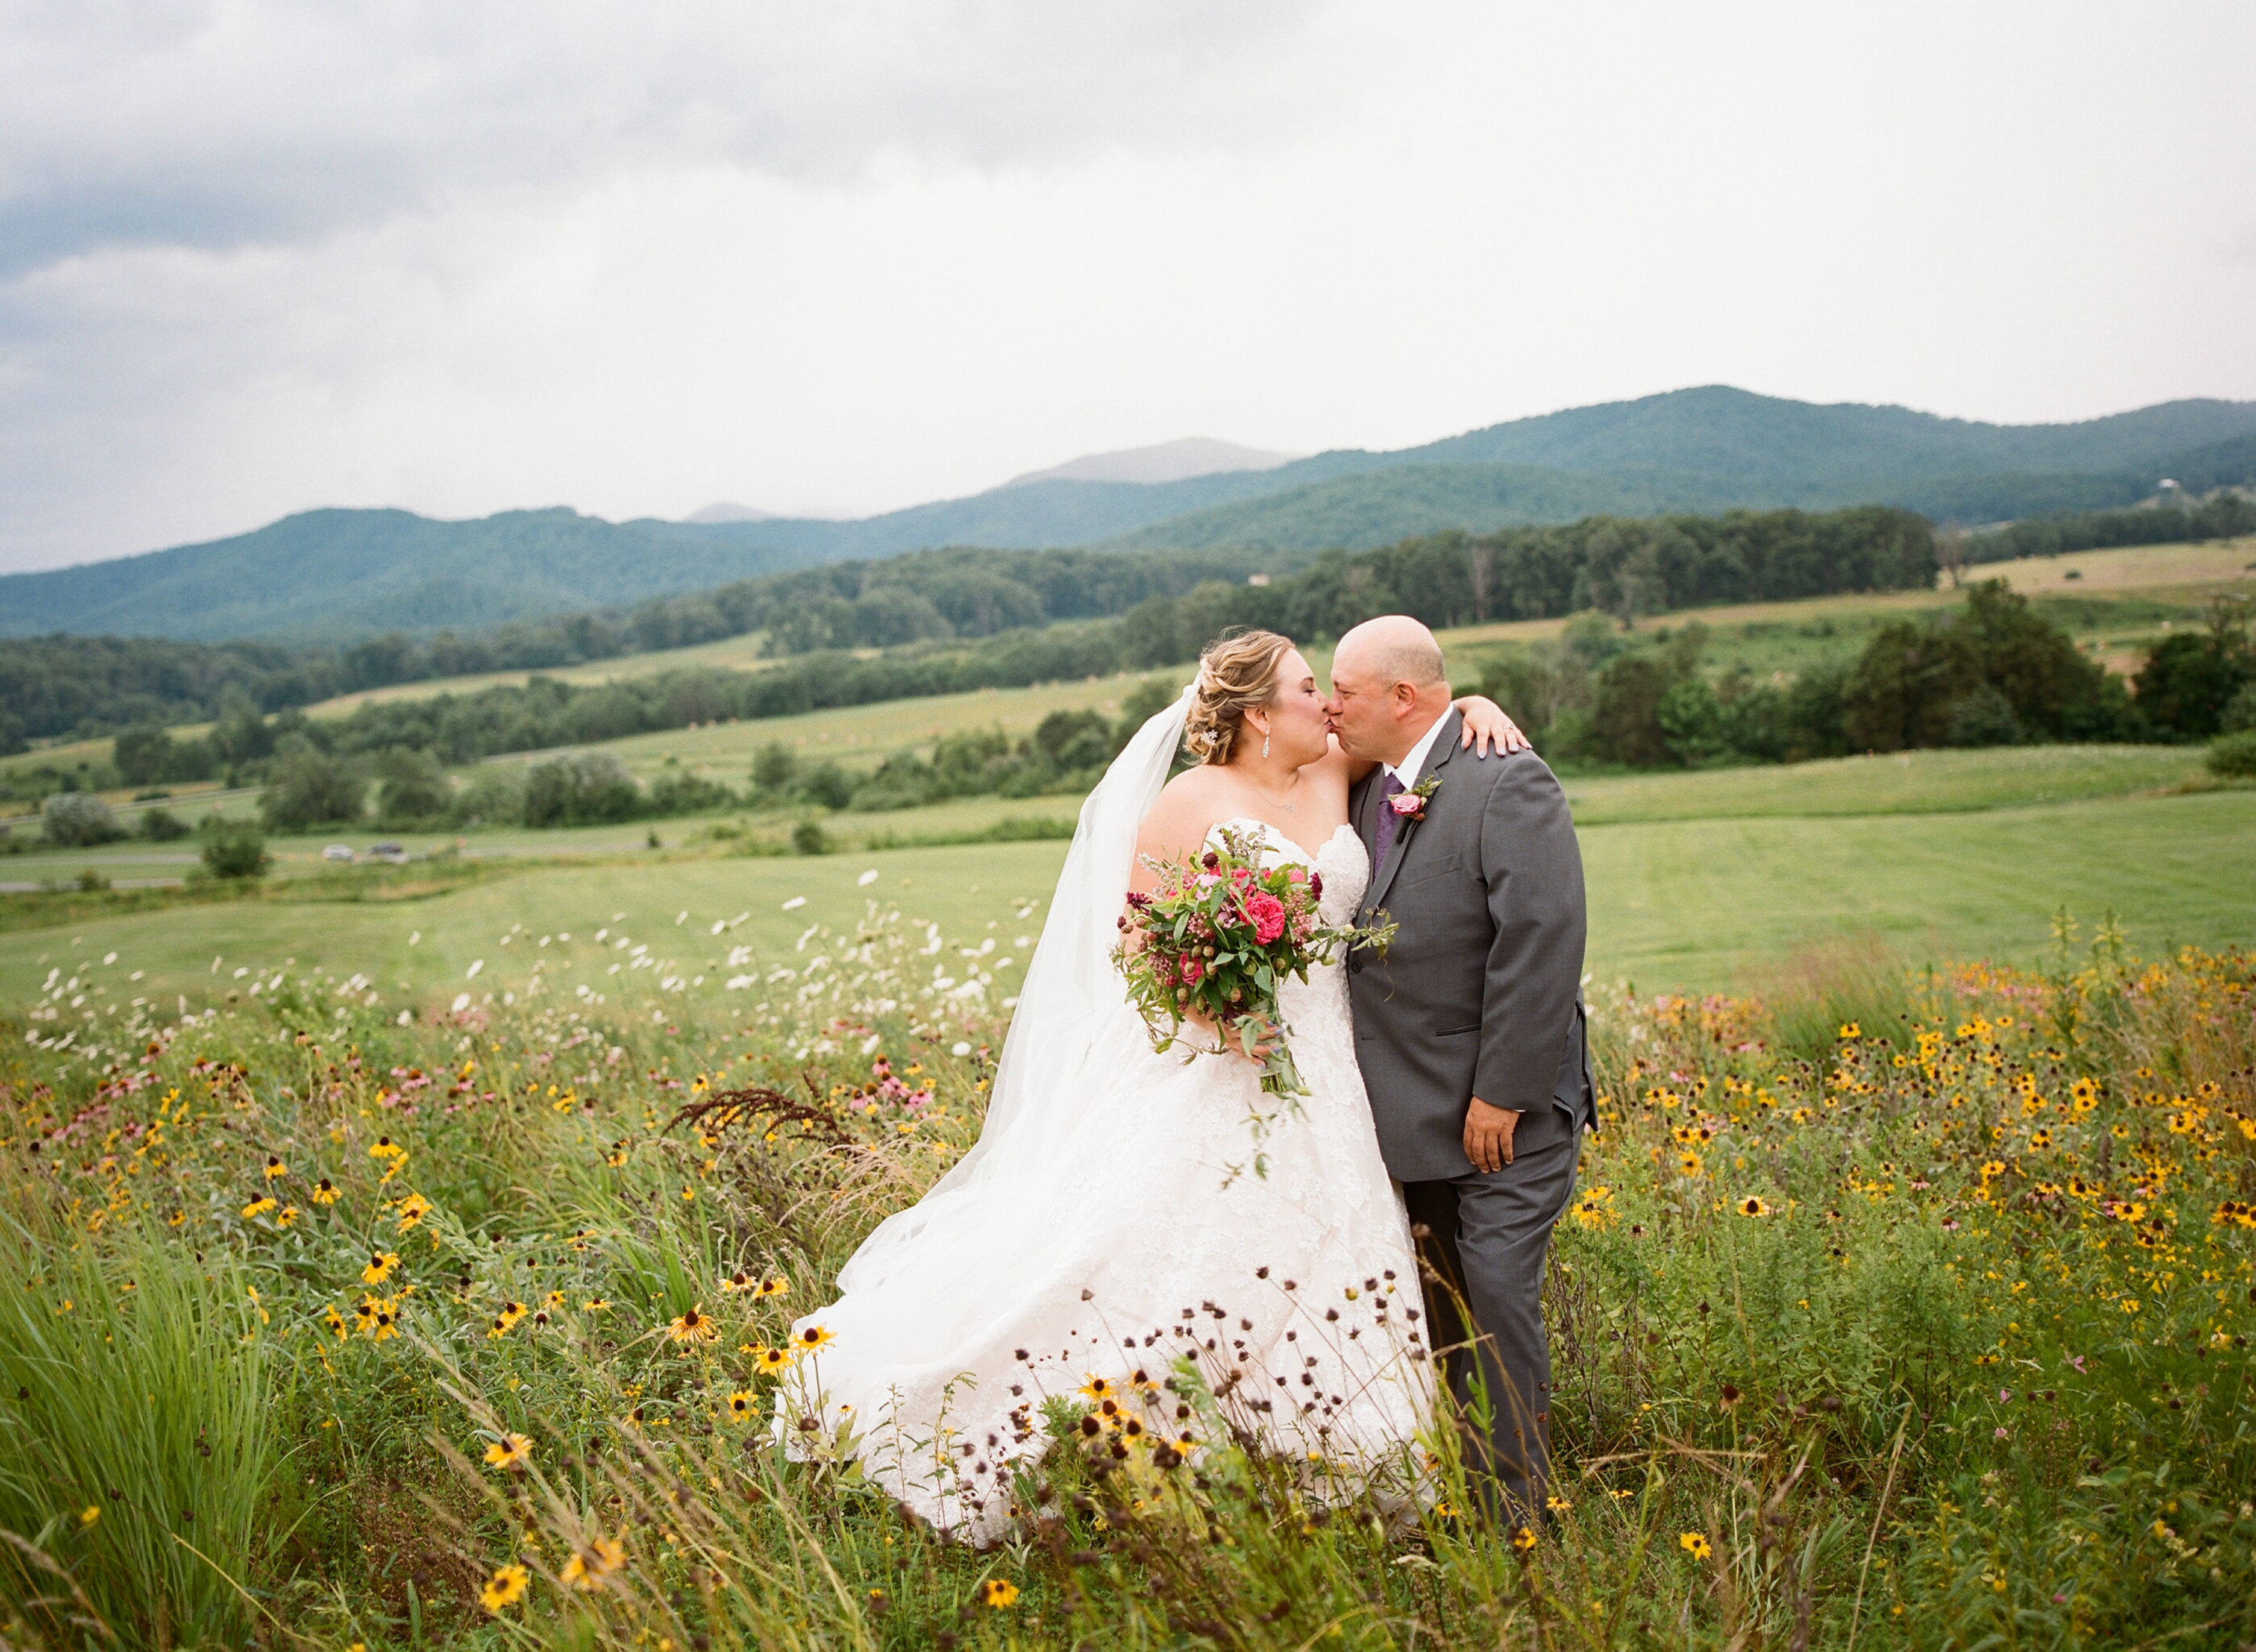 Crush on Coworker. This Groom Had a Crush on His Coworker Bride-to-Be for Five Years Before He Finally Asked her Out